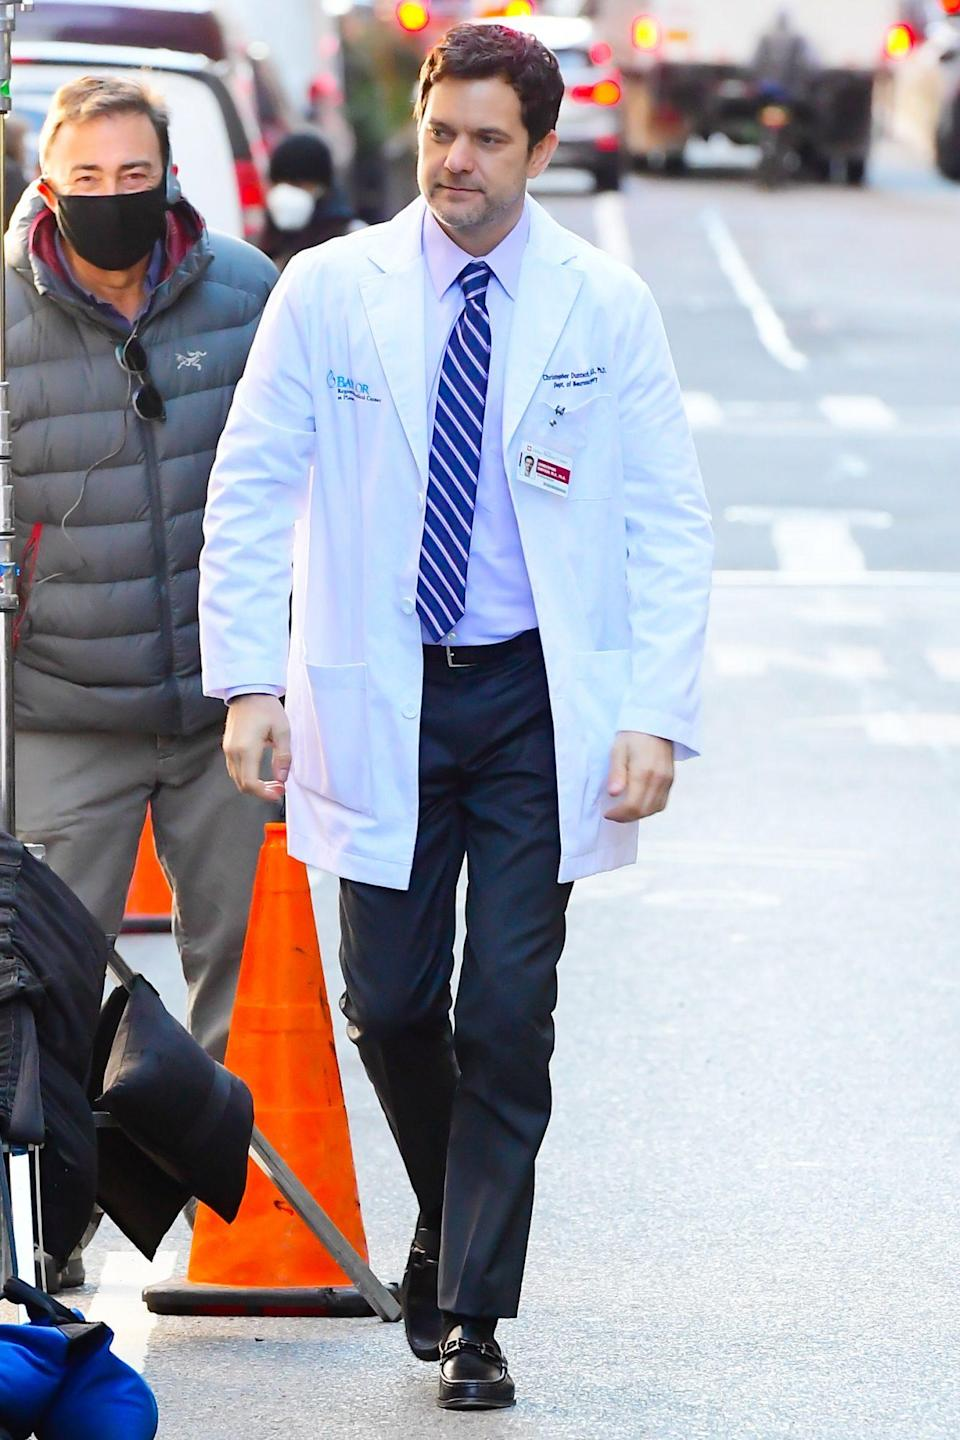 <p>Joshua Jackson is seen in character as he walks the set of <em>Dr. Death</em> on Thursday in N.Y.C.</p>